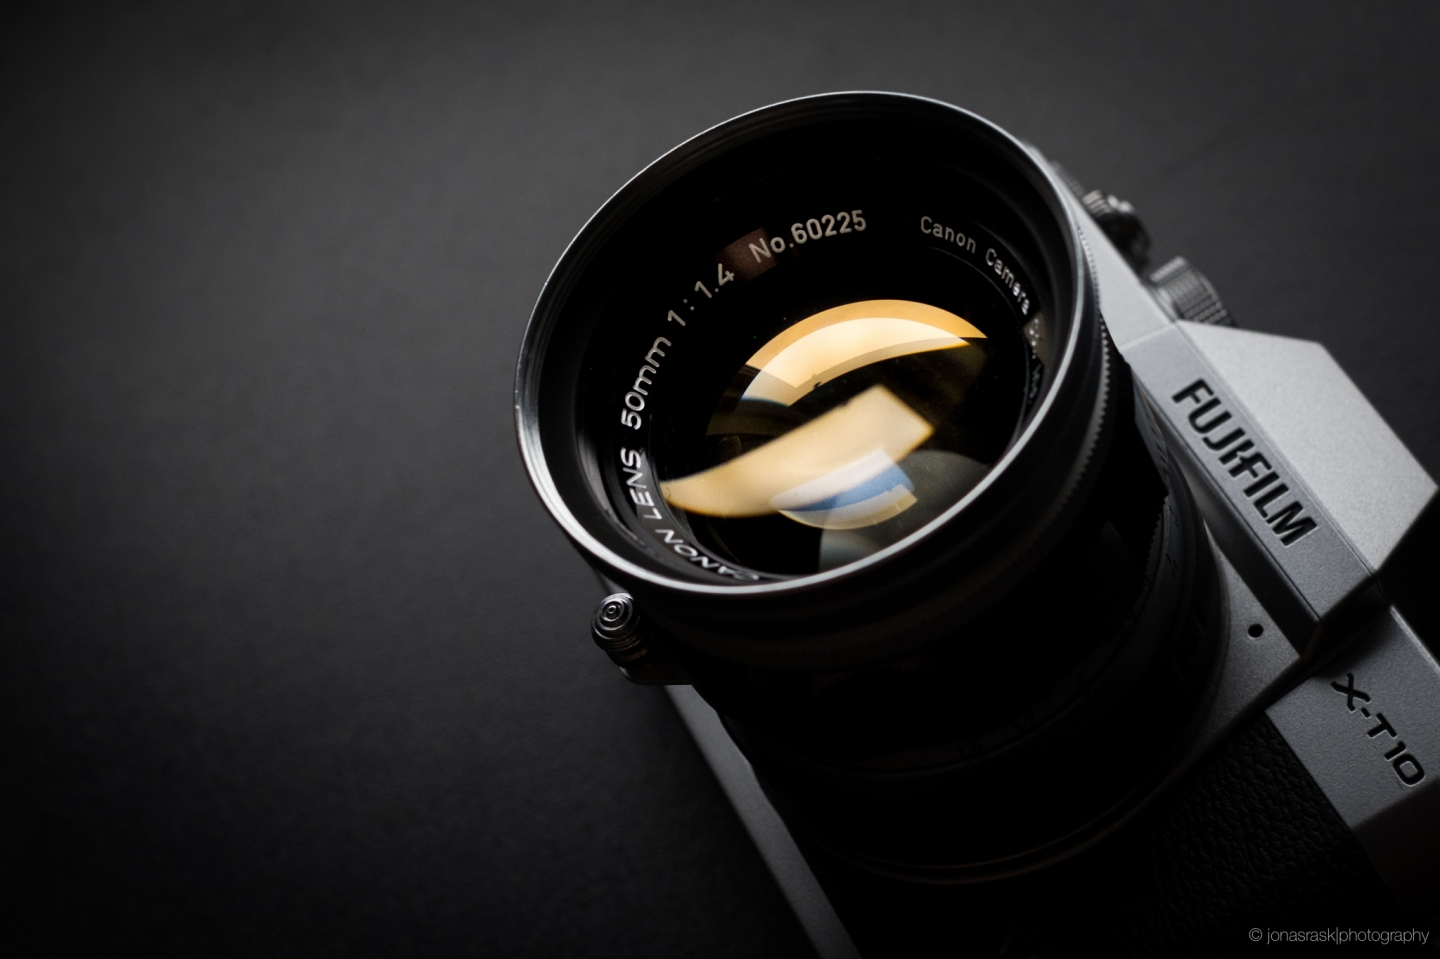 The Canon 50mm f/1.4 LTMreview